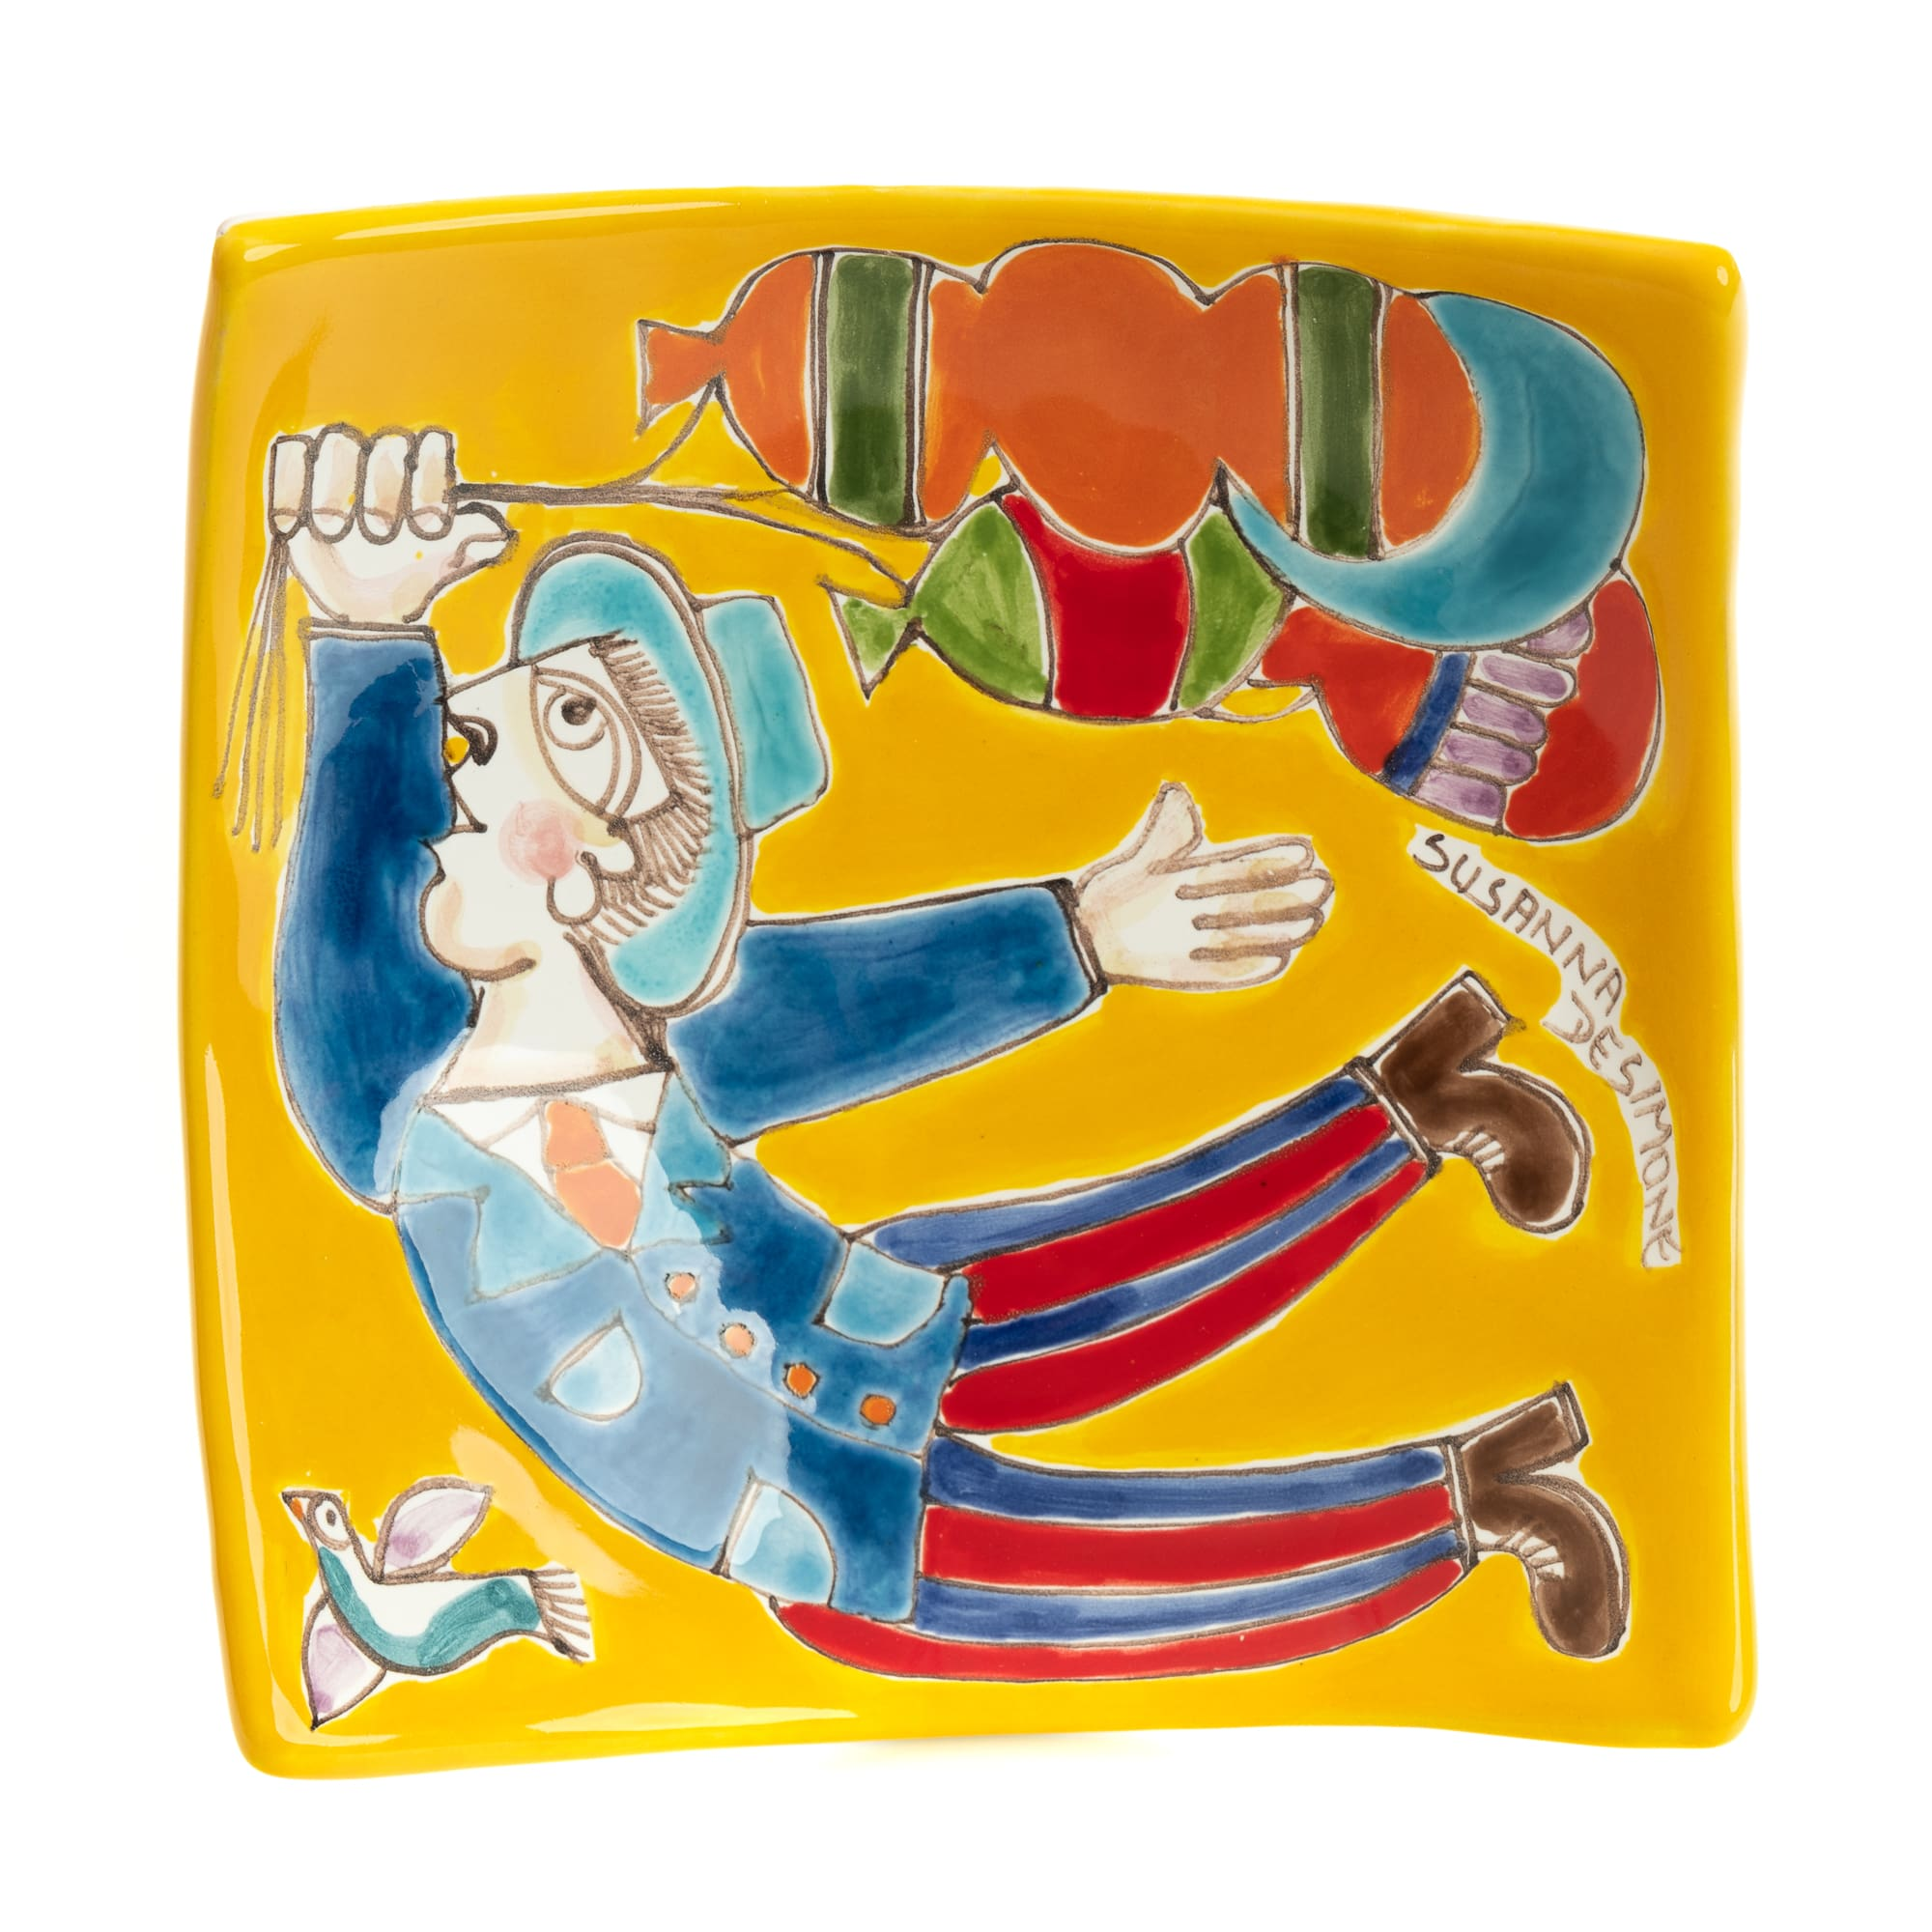 Balloon Man Square Raised Corner Ceramic Dish